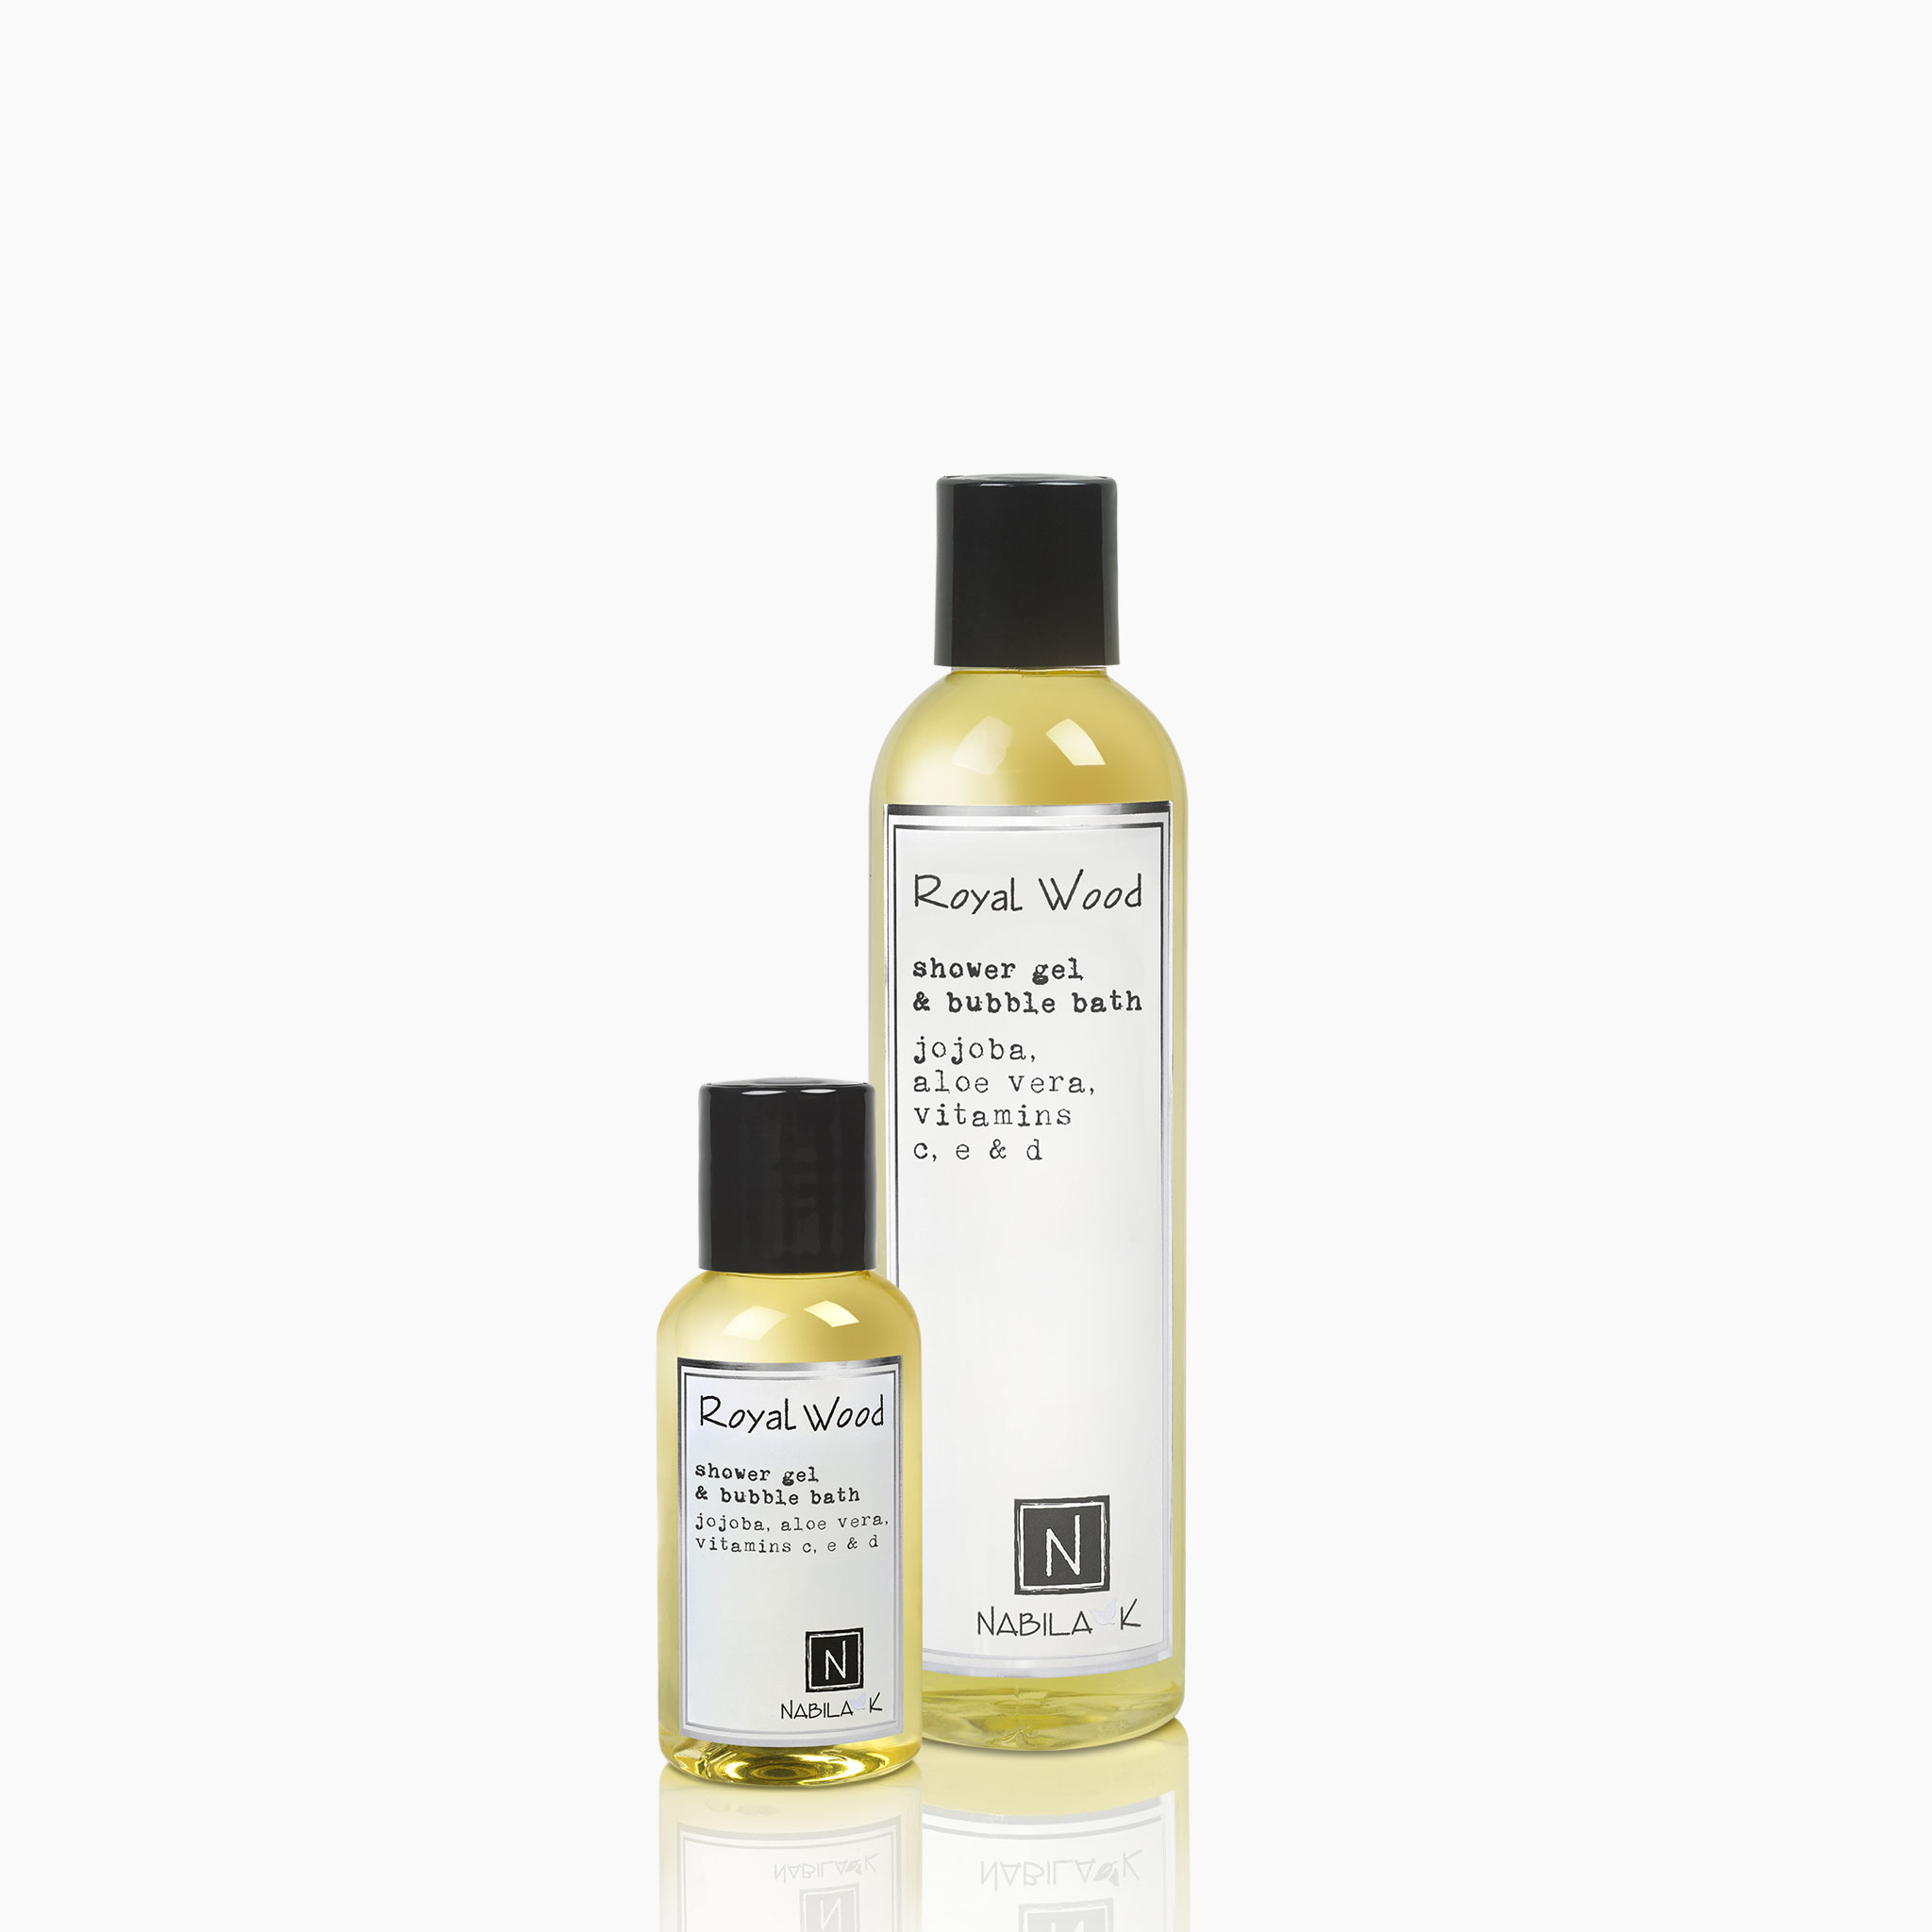 Spice, leather and earthy fragrances create the perfect shower gel for the Fall and Winter!